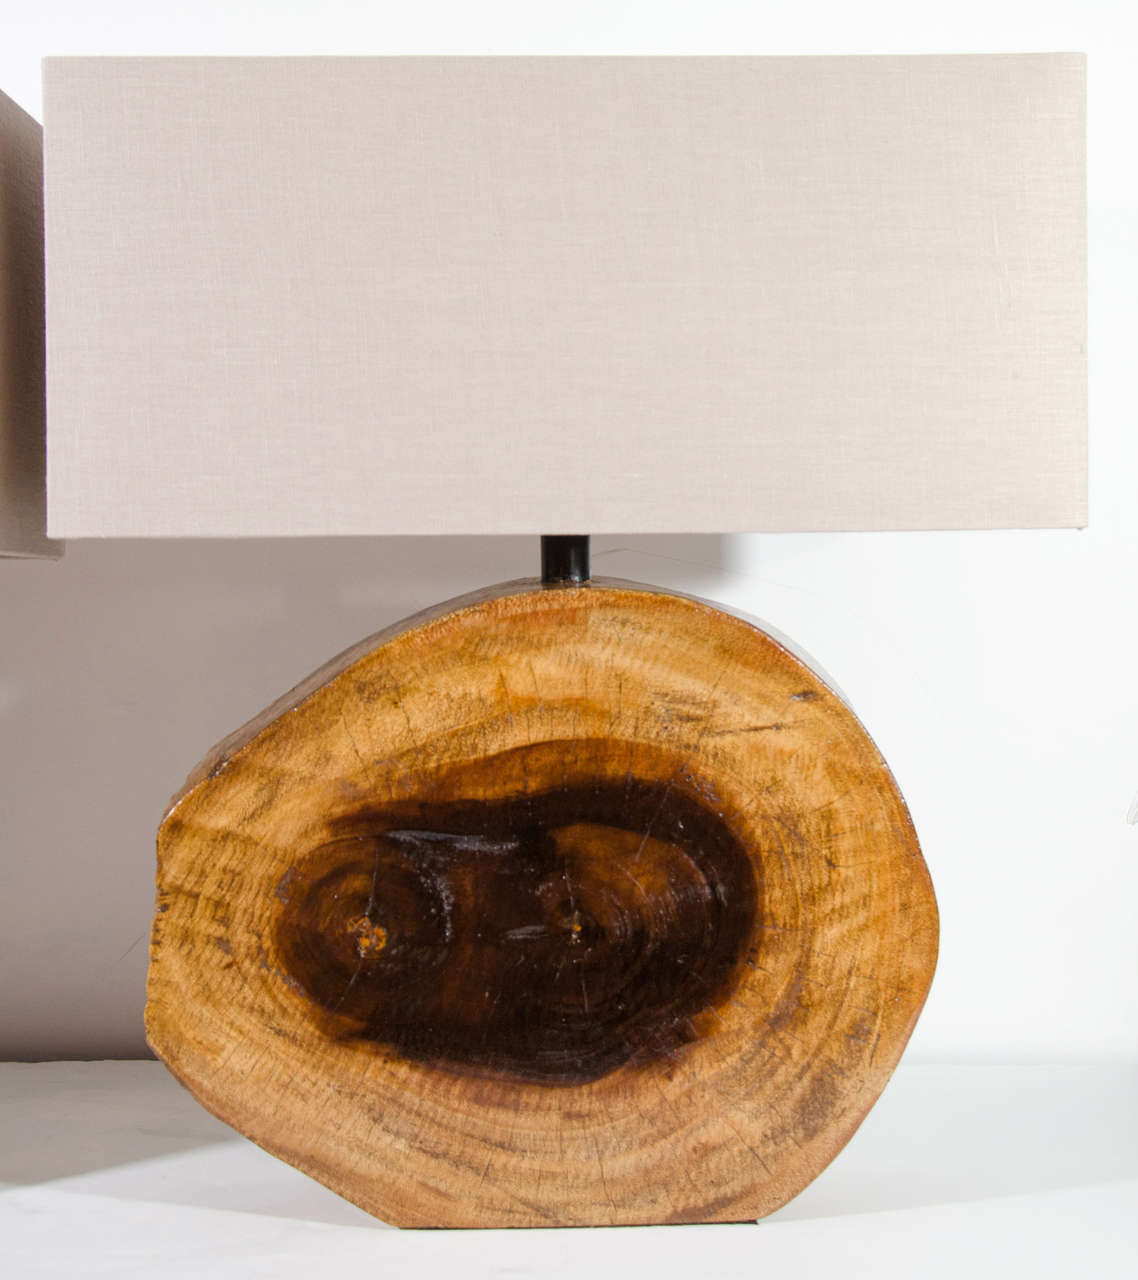 American Pair Of Organic Cedar Wood Lamps With Rustic Slab Design For Sale